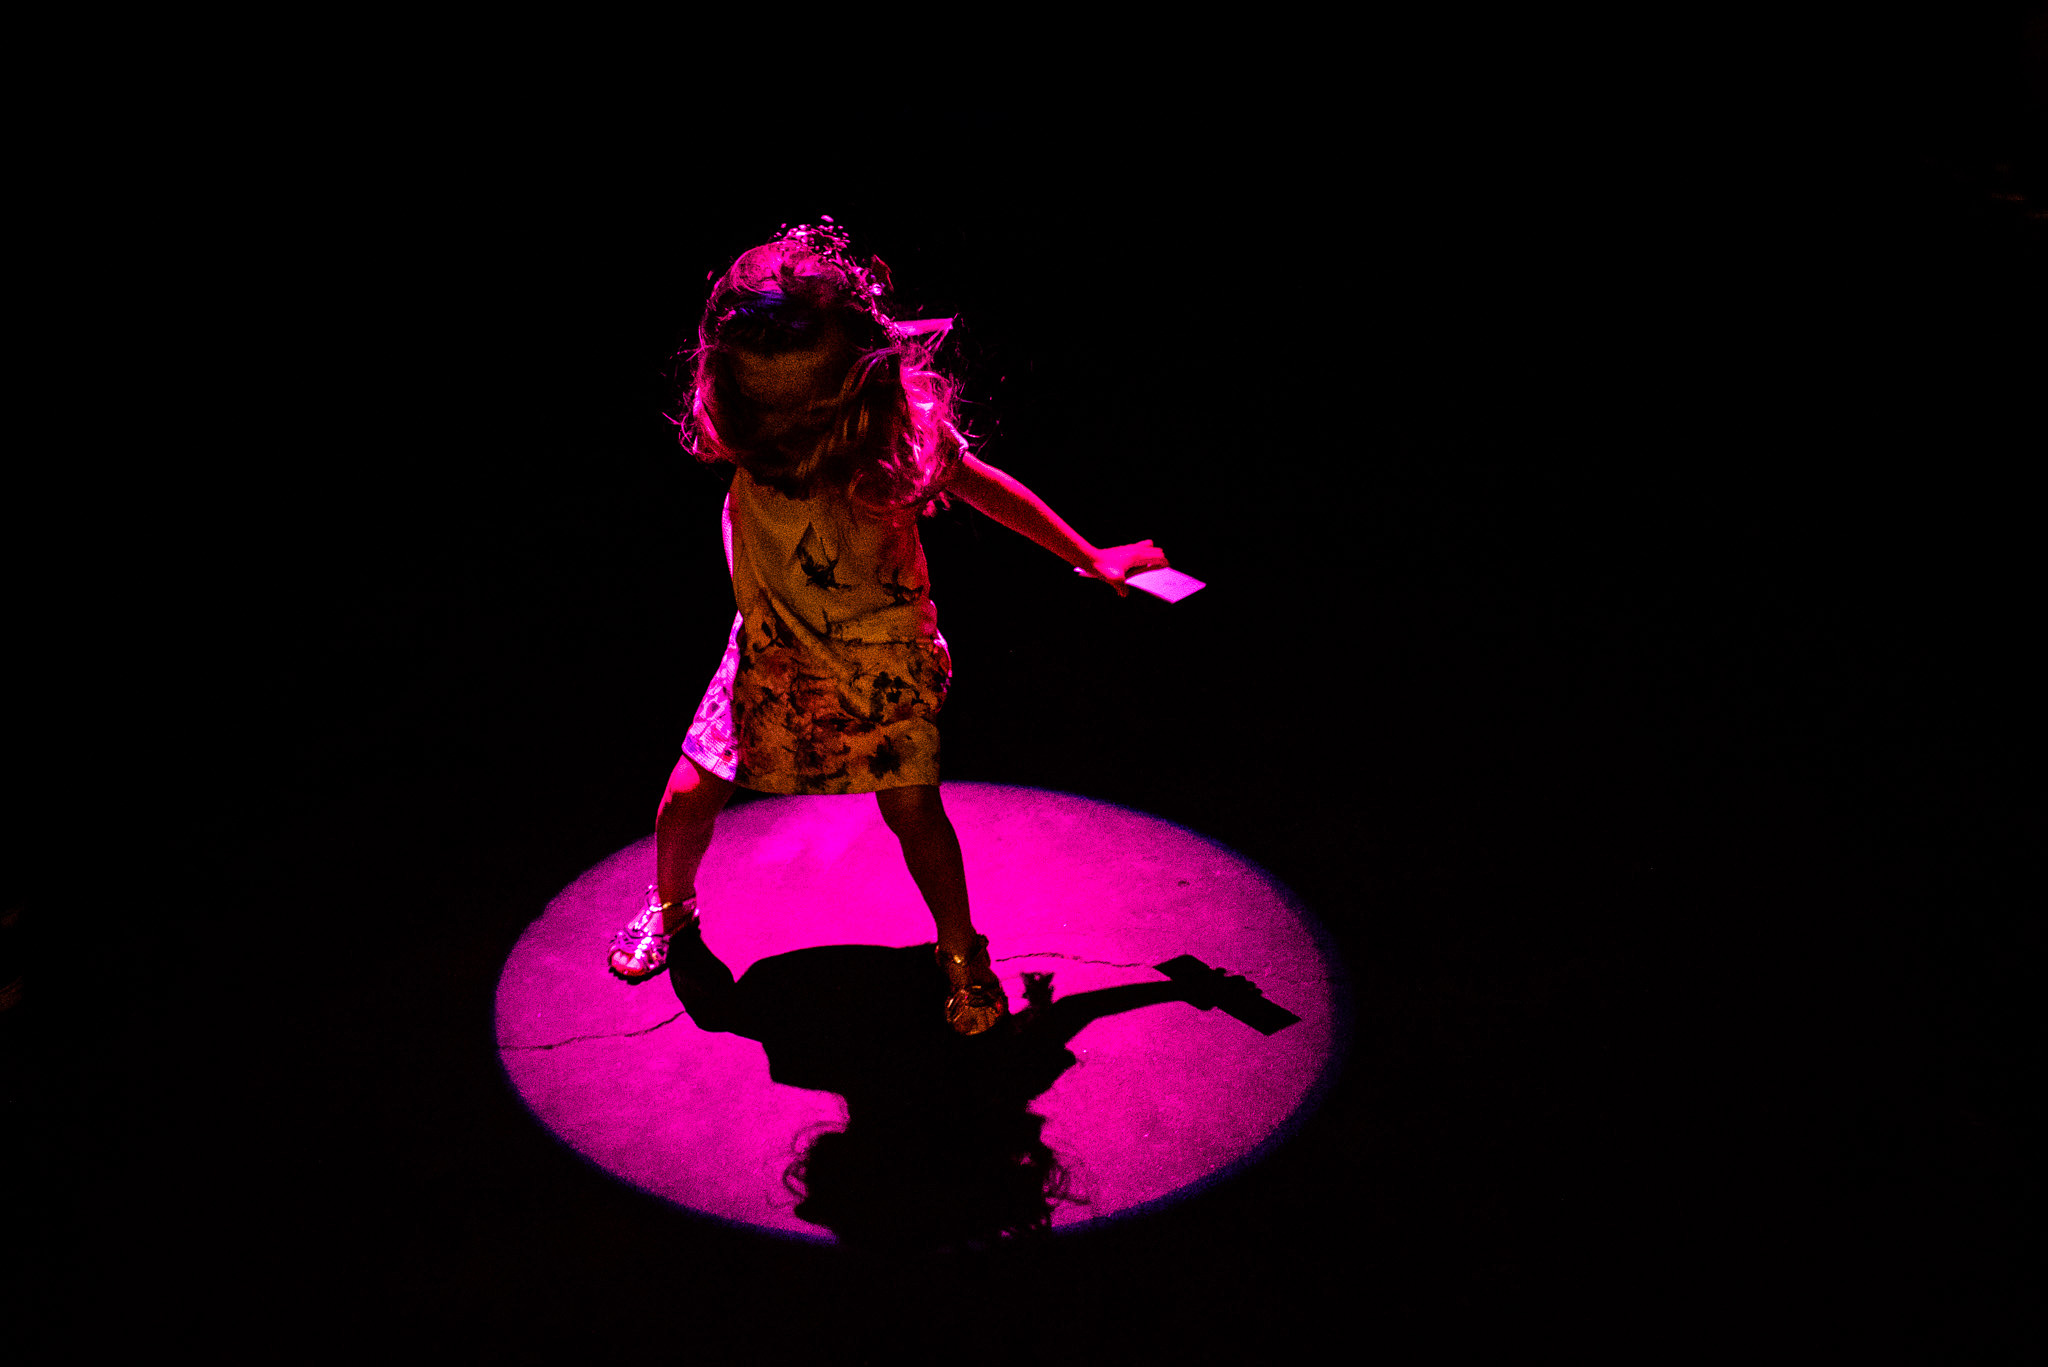 girl dancing on spot light